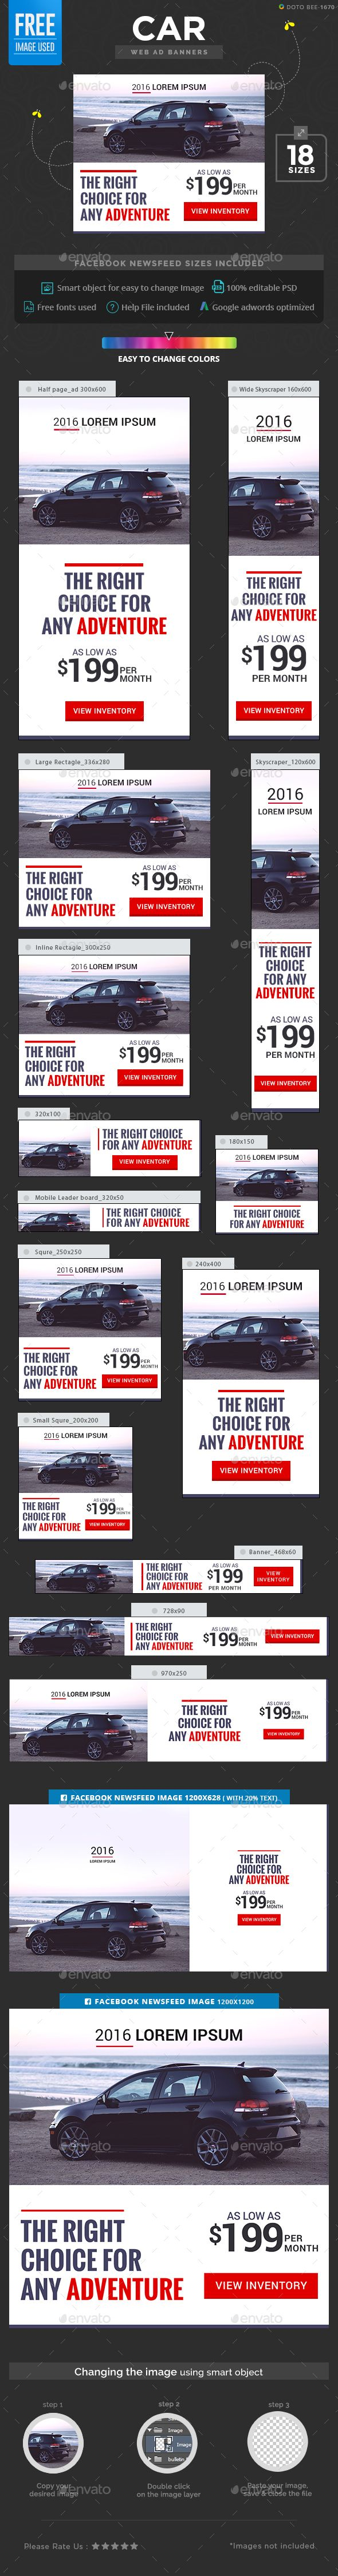 Car Ad Banners - Banners & Ads Web Elements Download here : https://graphicriver.net/item/car-ad-banners/17812813?s_rank=204&ref=Al-fatih